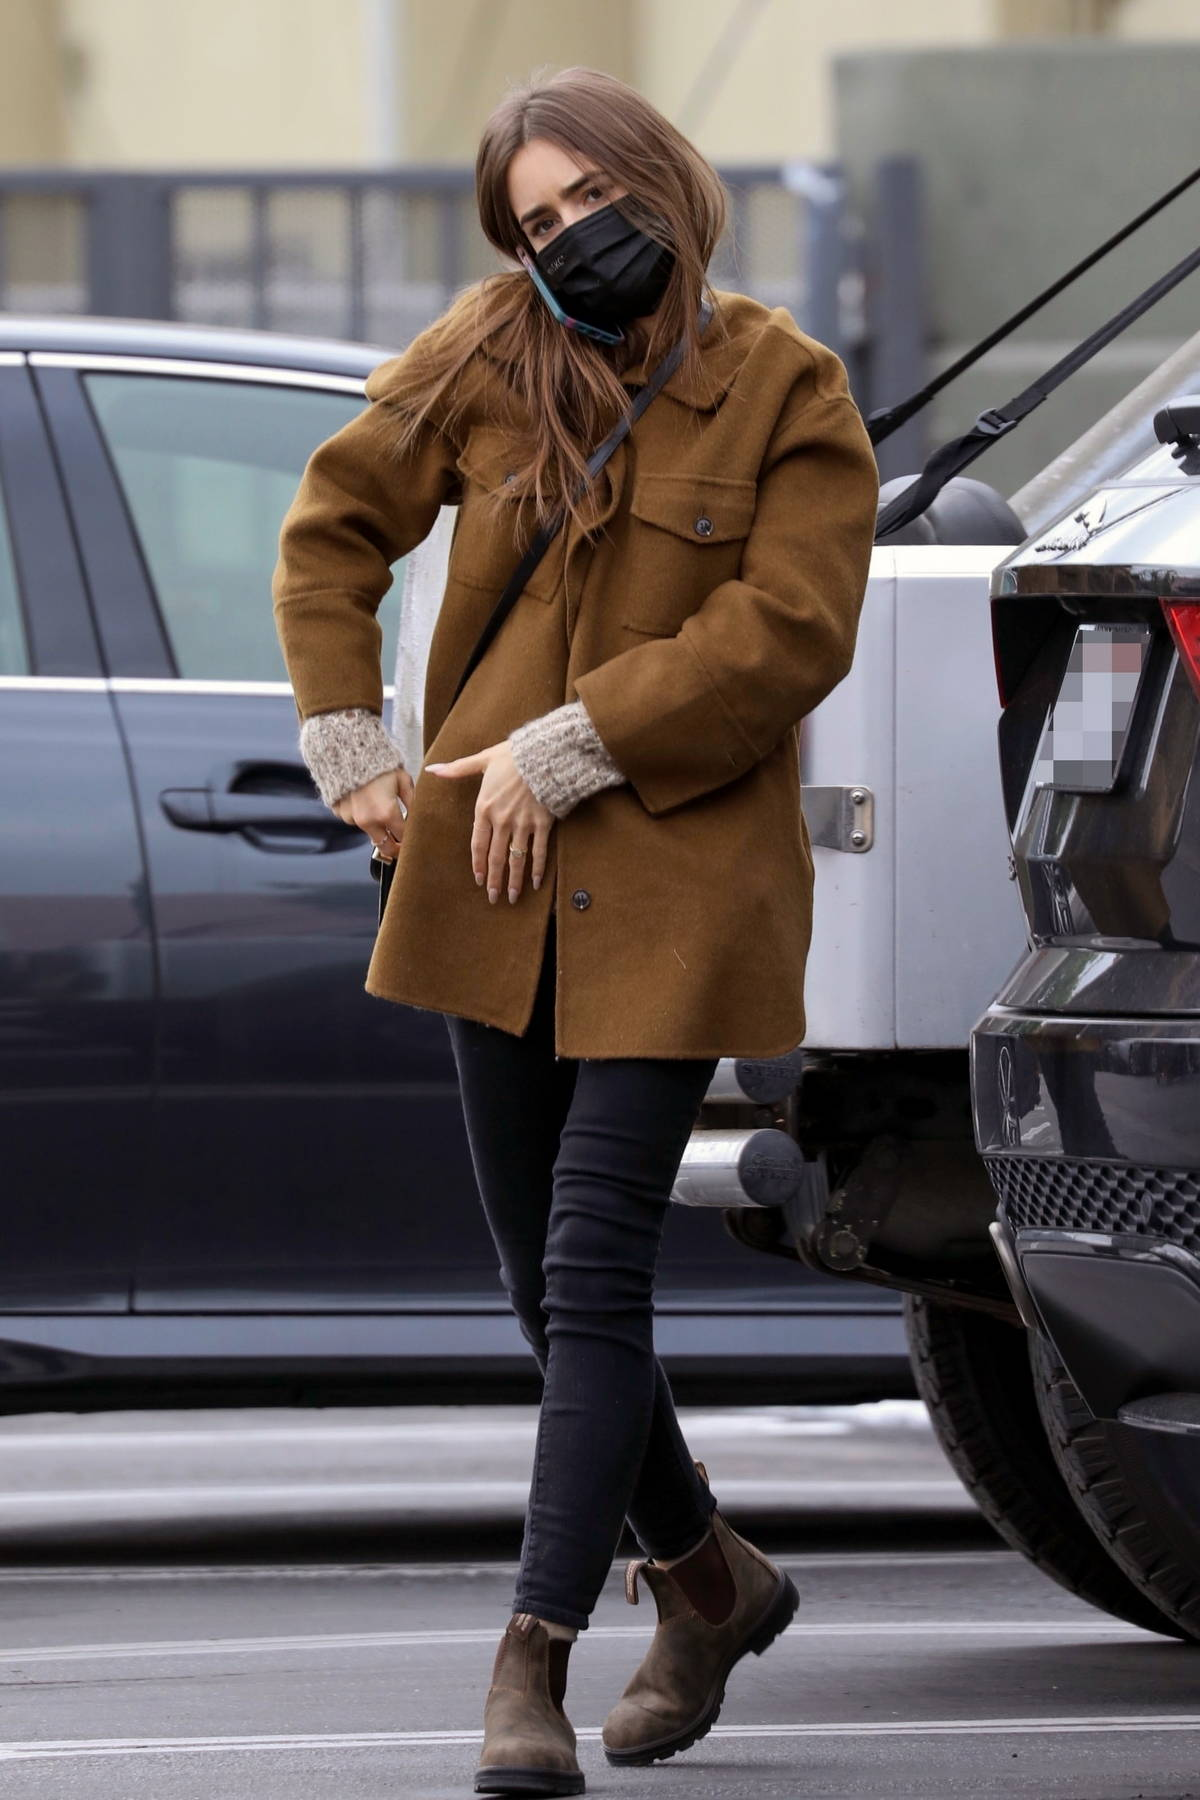 Lily Collins wears a brown jacket and black jeans as goes grocery shopping at Trader Joe's in Los Angeles